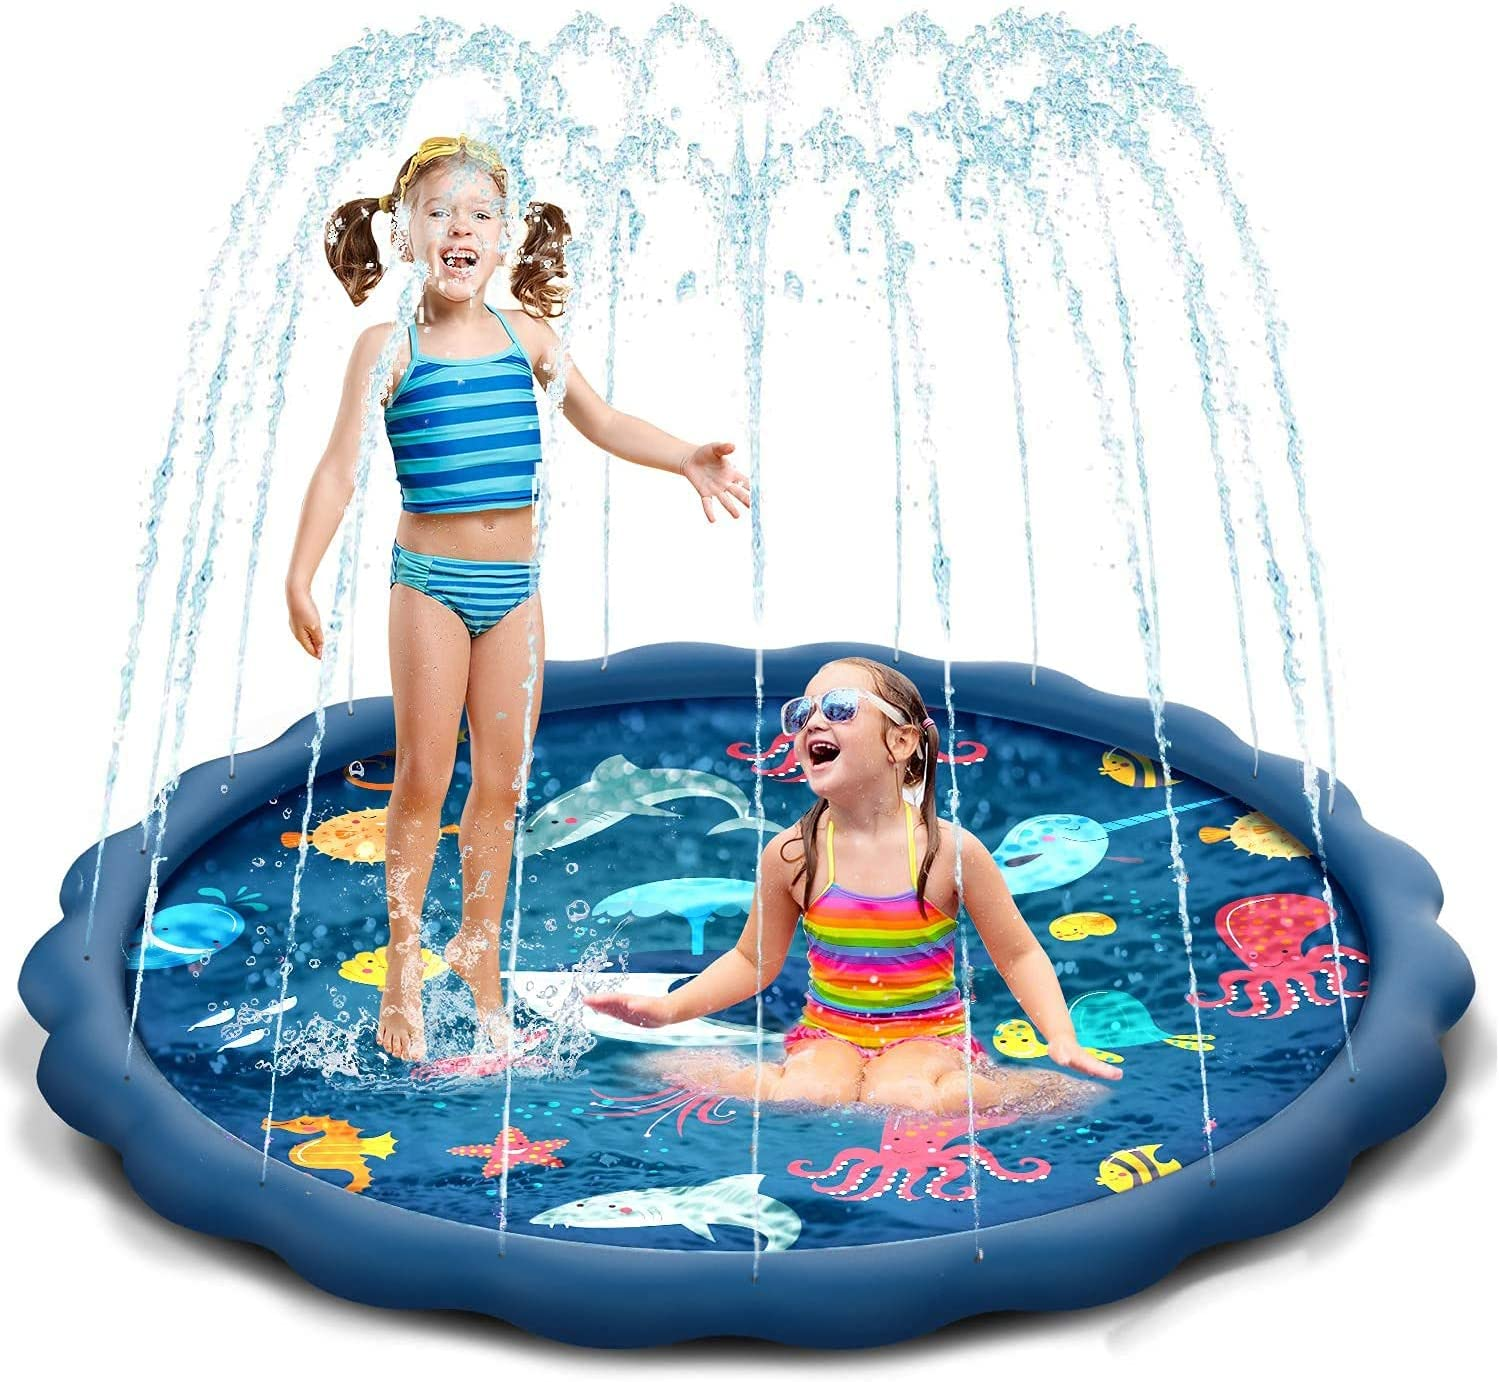 Outdoor Water Toy for Kids 68inch Shark Sprinkler Play Mat Swimming Pool Backyard Pets BWOU Splash Pad Children Toddlers